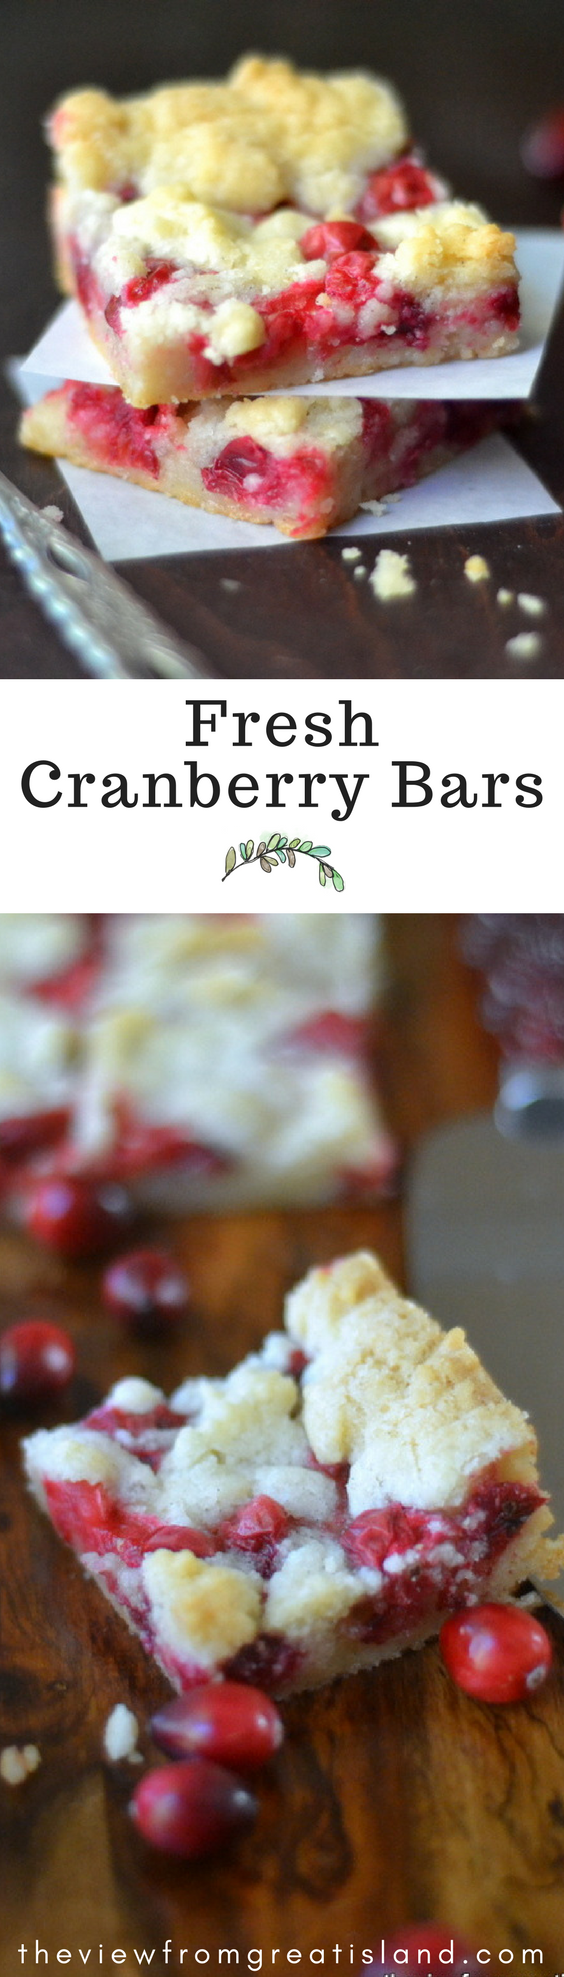 Fresh Cranberry Bars ~ these buttery shortbread crumble bars are bursting with fresh tart cranberries and the combination is pure heaven! #dessert #cranberrycake #cranberries #Christmas #holidays #fall #freshcranberries #shortbread #bars #crumble